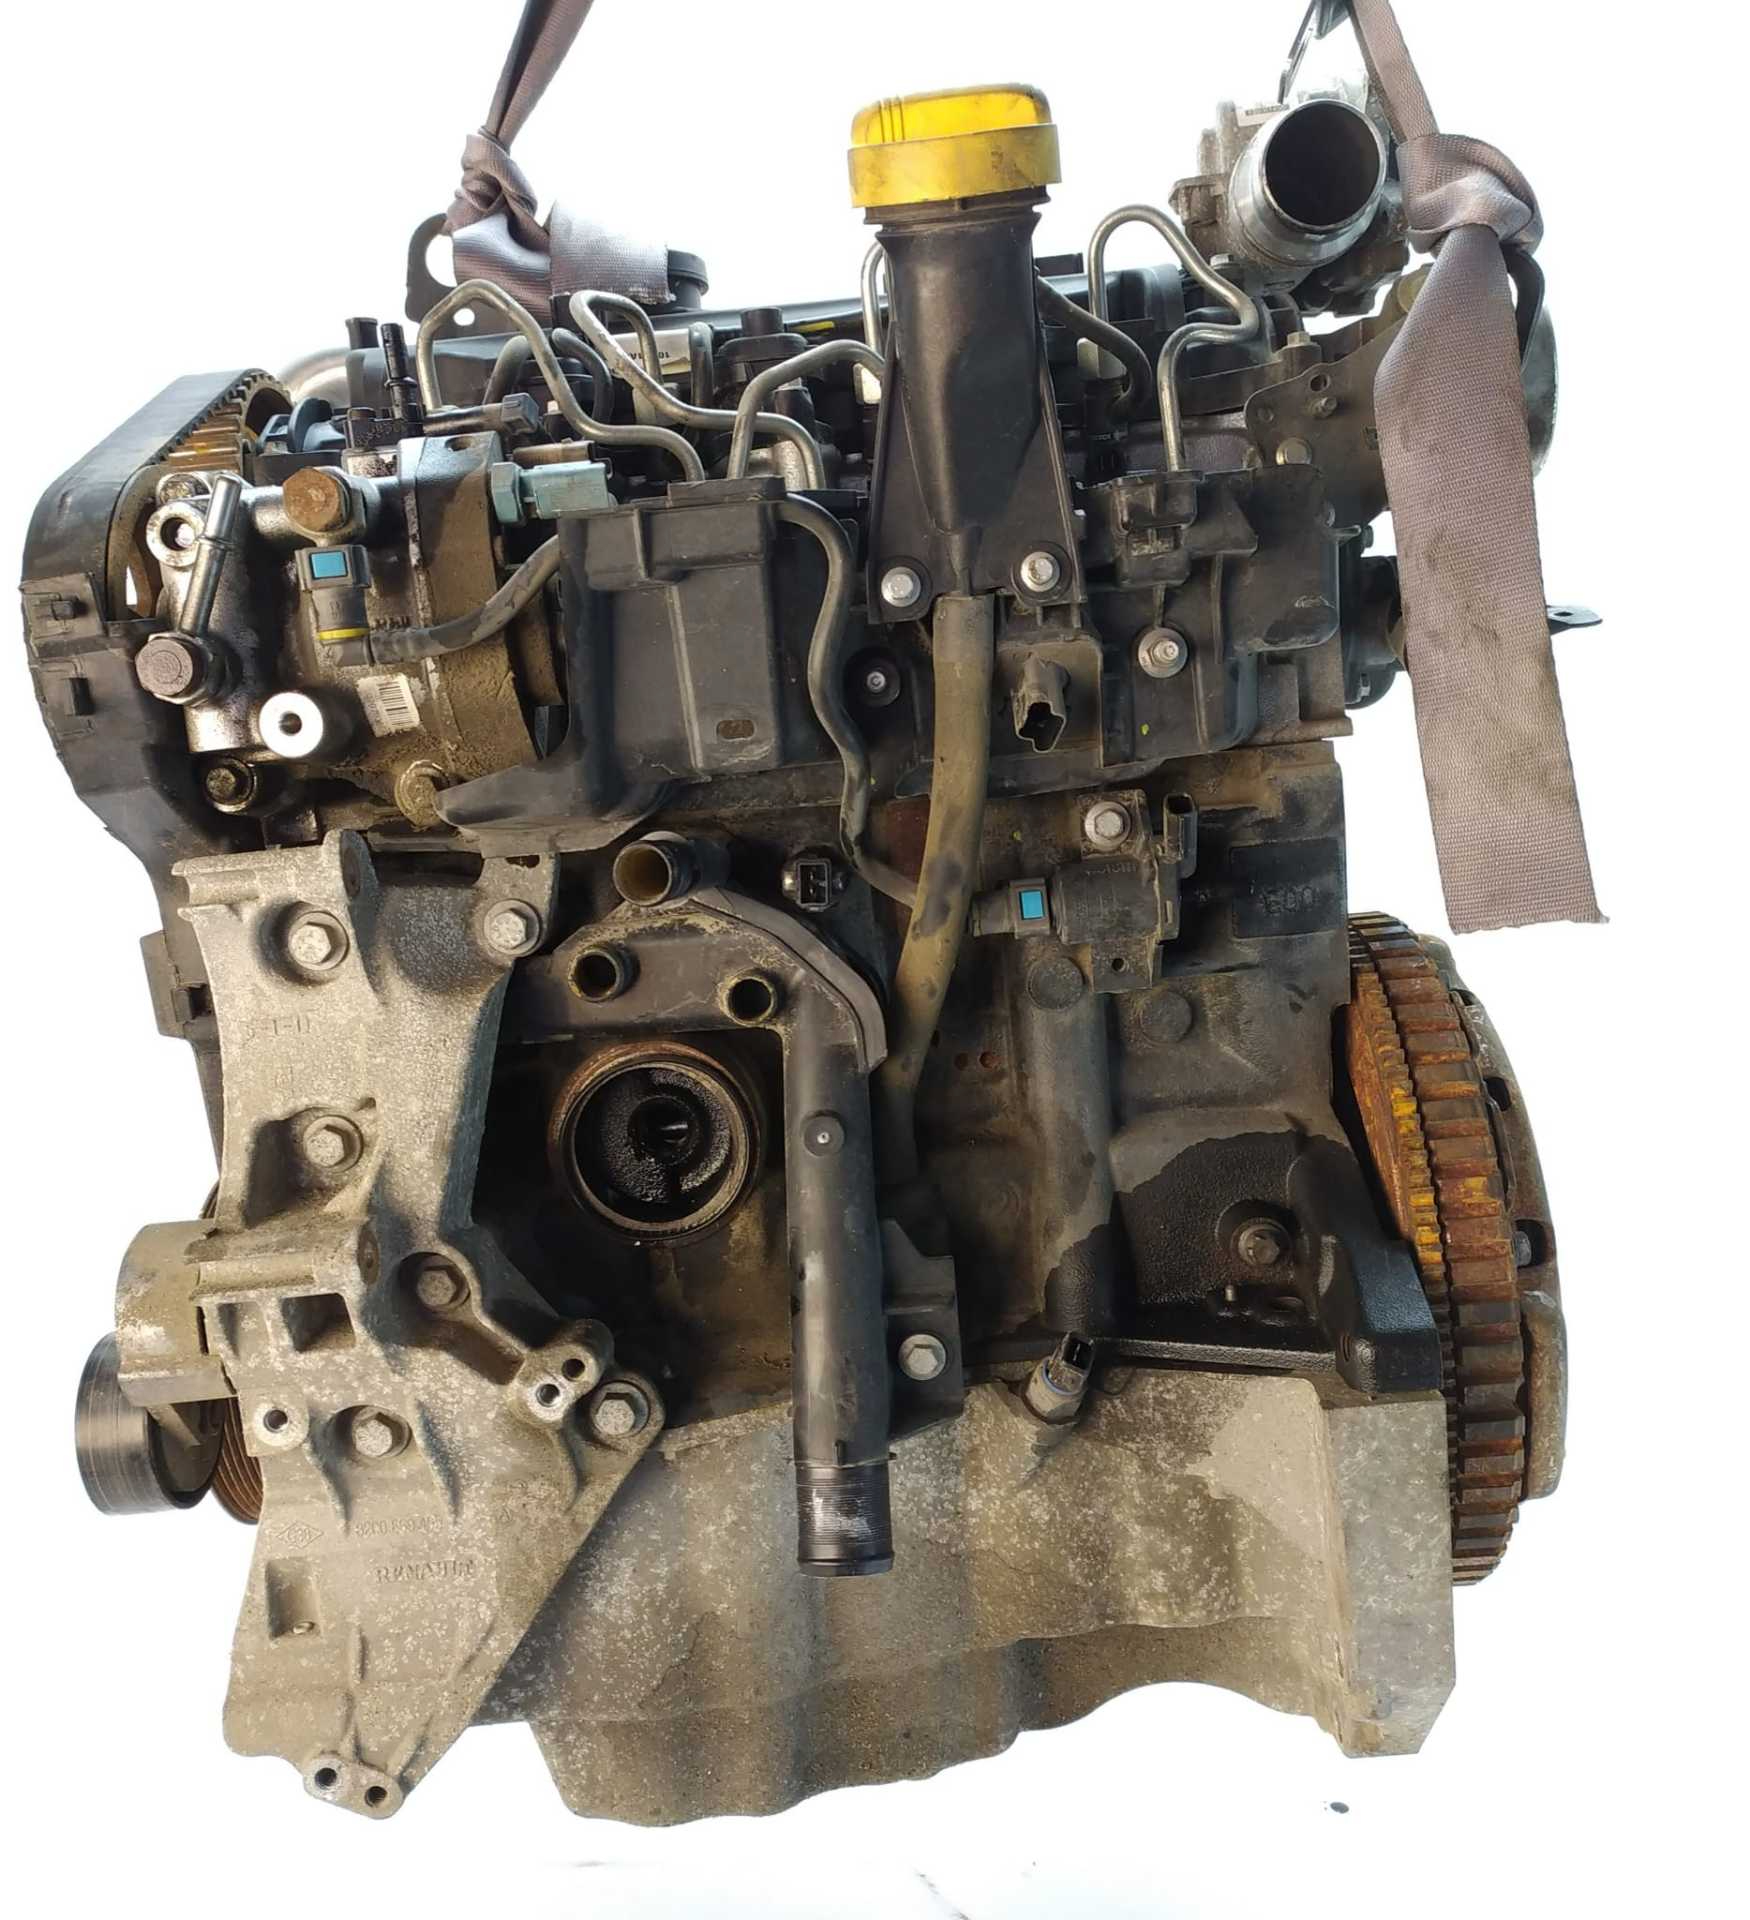 MOTOR COMPLETO RENAULT CLIO IV 1.5 dCi 90 (66 KW / 90 CV) (11.2012 - ...)